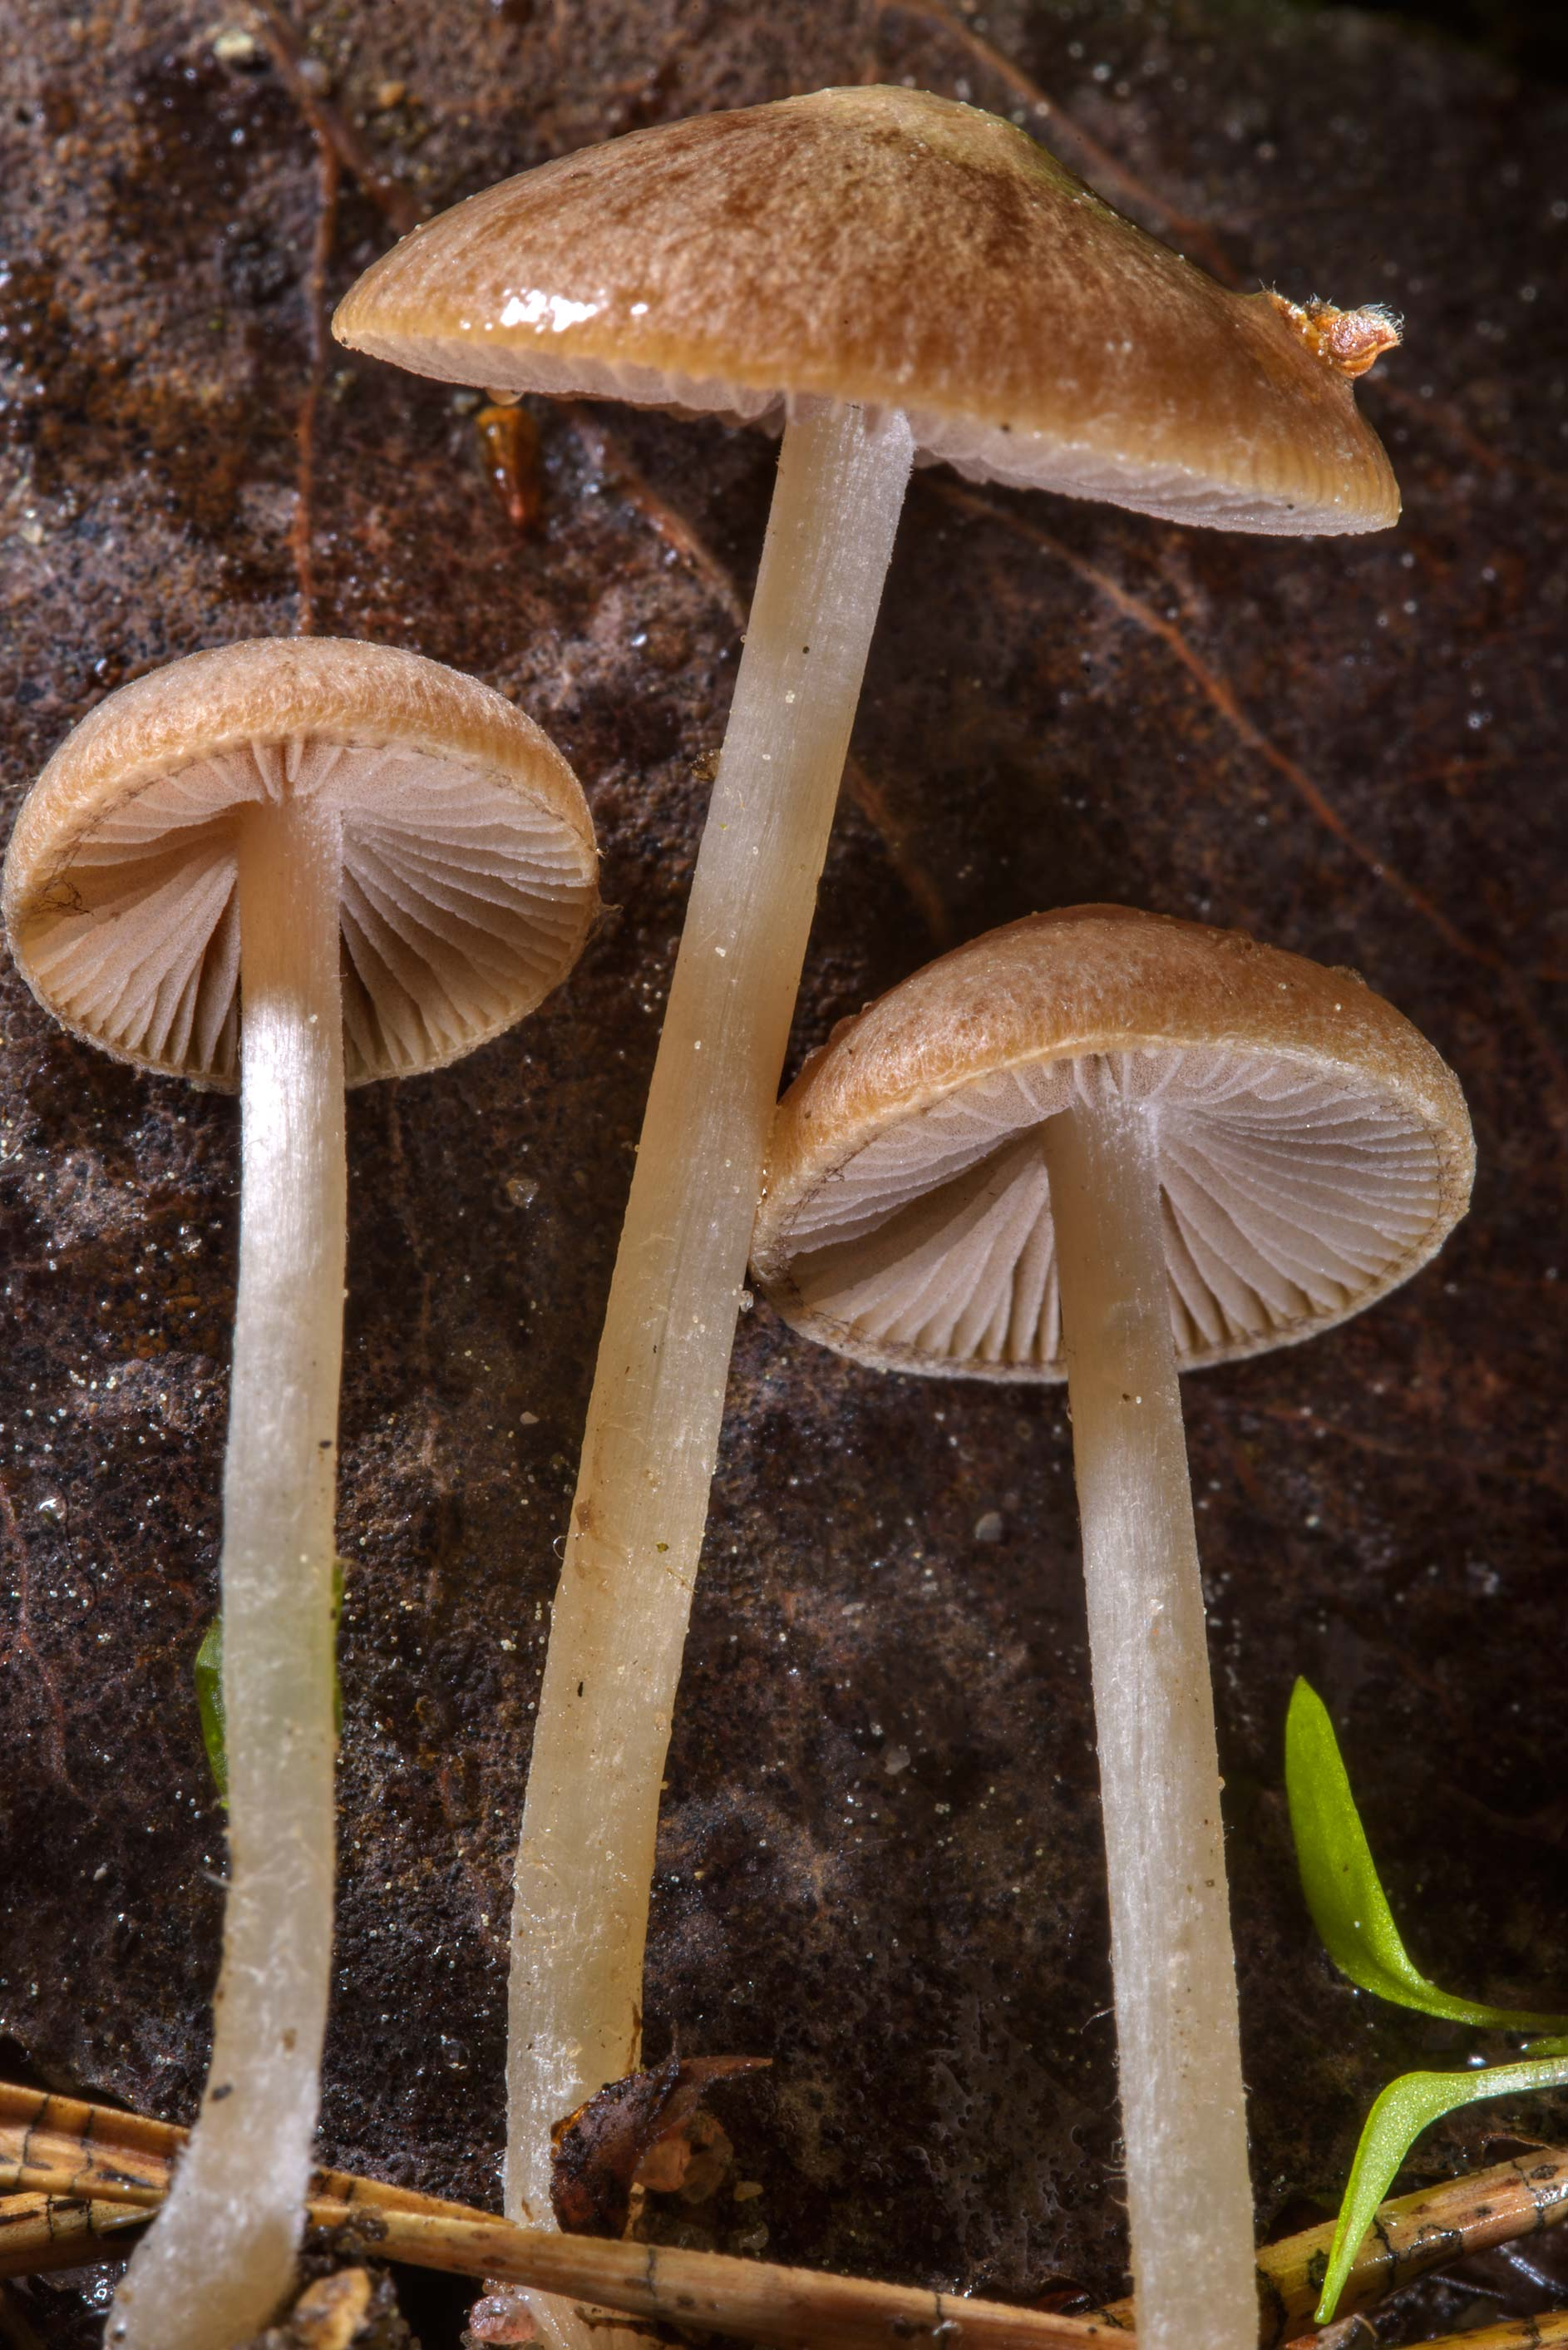 Close up of brittlestem mushrooms Psathyrella...Pesochny, near St.Petersburg. Russia